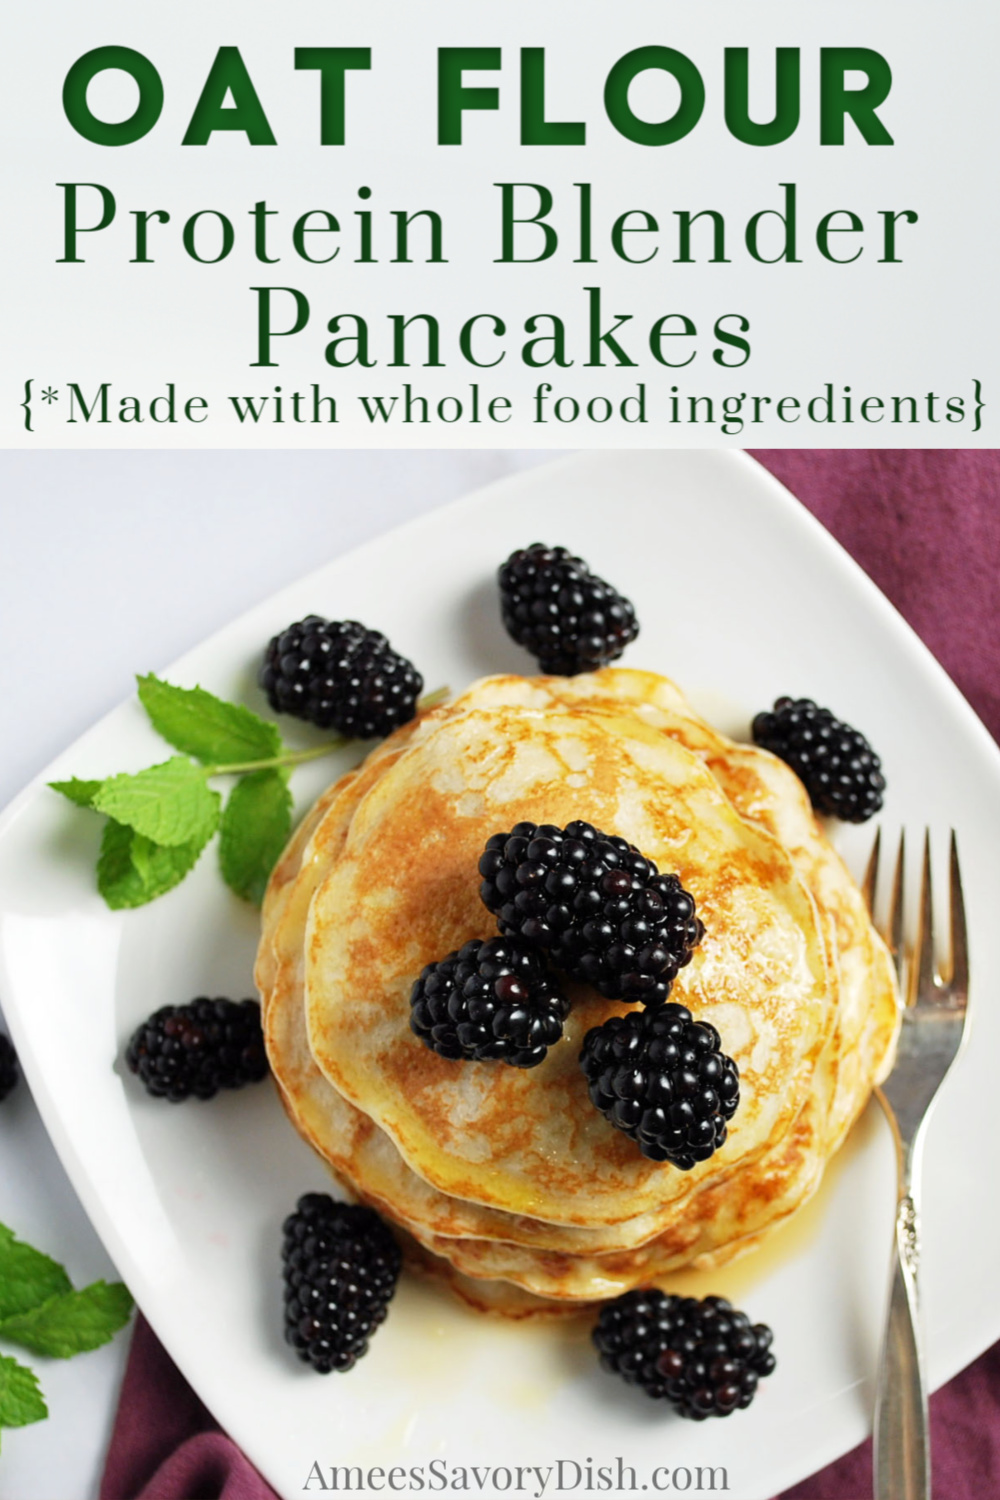 Easy gluten-free whole food Protein Blender Pancakes are made with only five ingredients and perfect for your weekly meal prep! #mealpreppancakes #blenderpancakes #oatflourpancakes #glutenfreepancakes via @Ameessavorydish